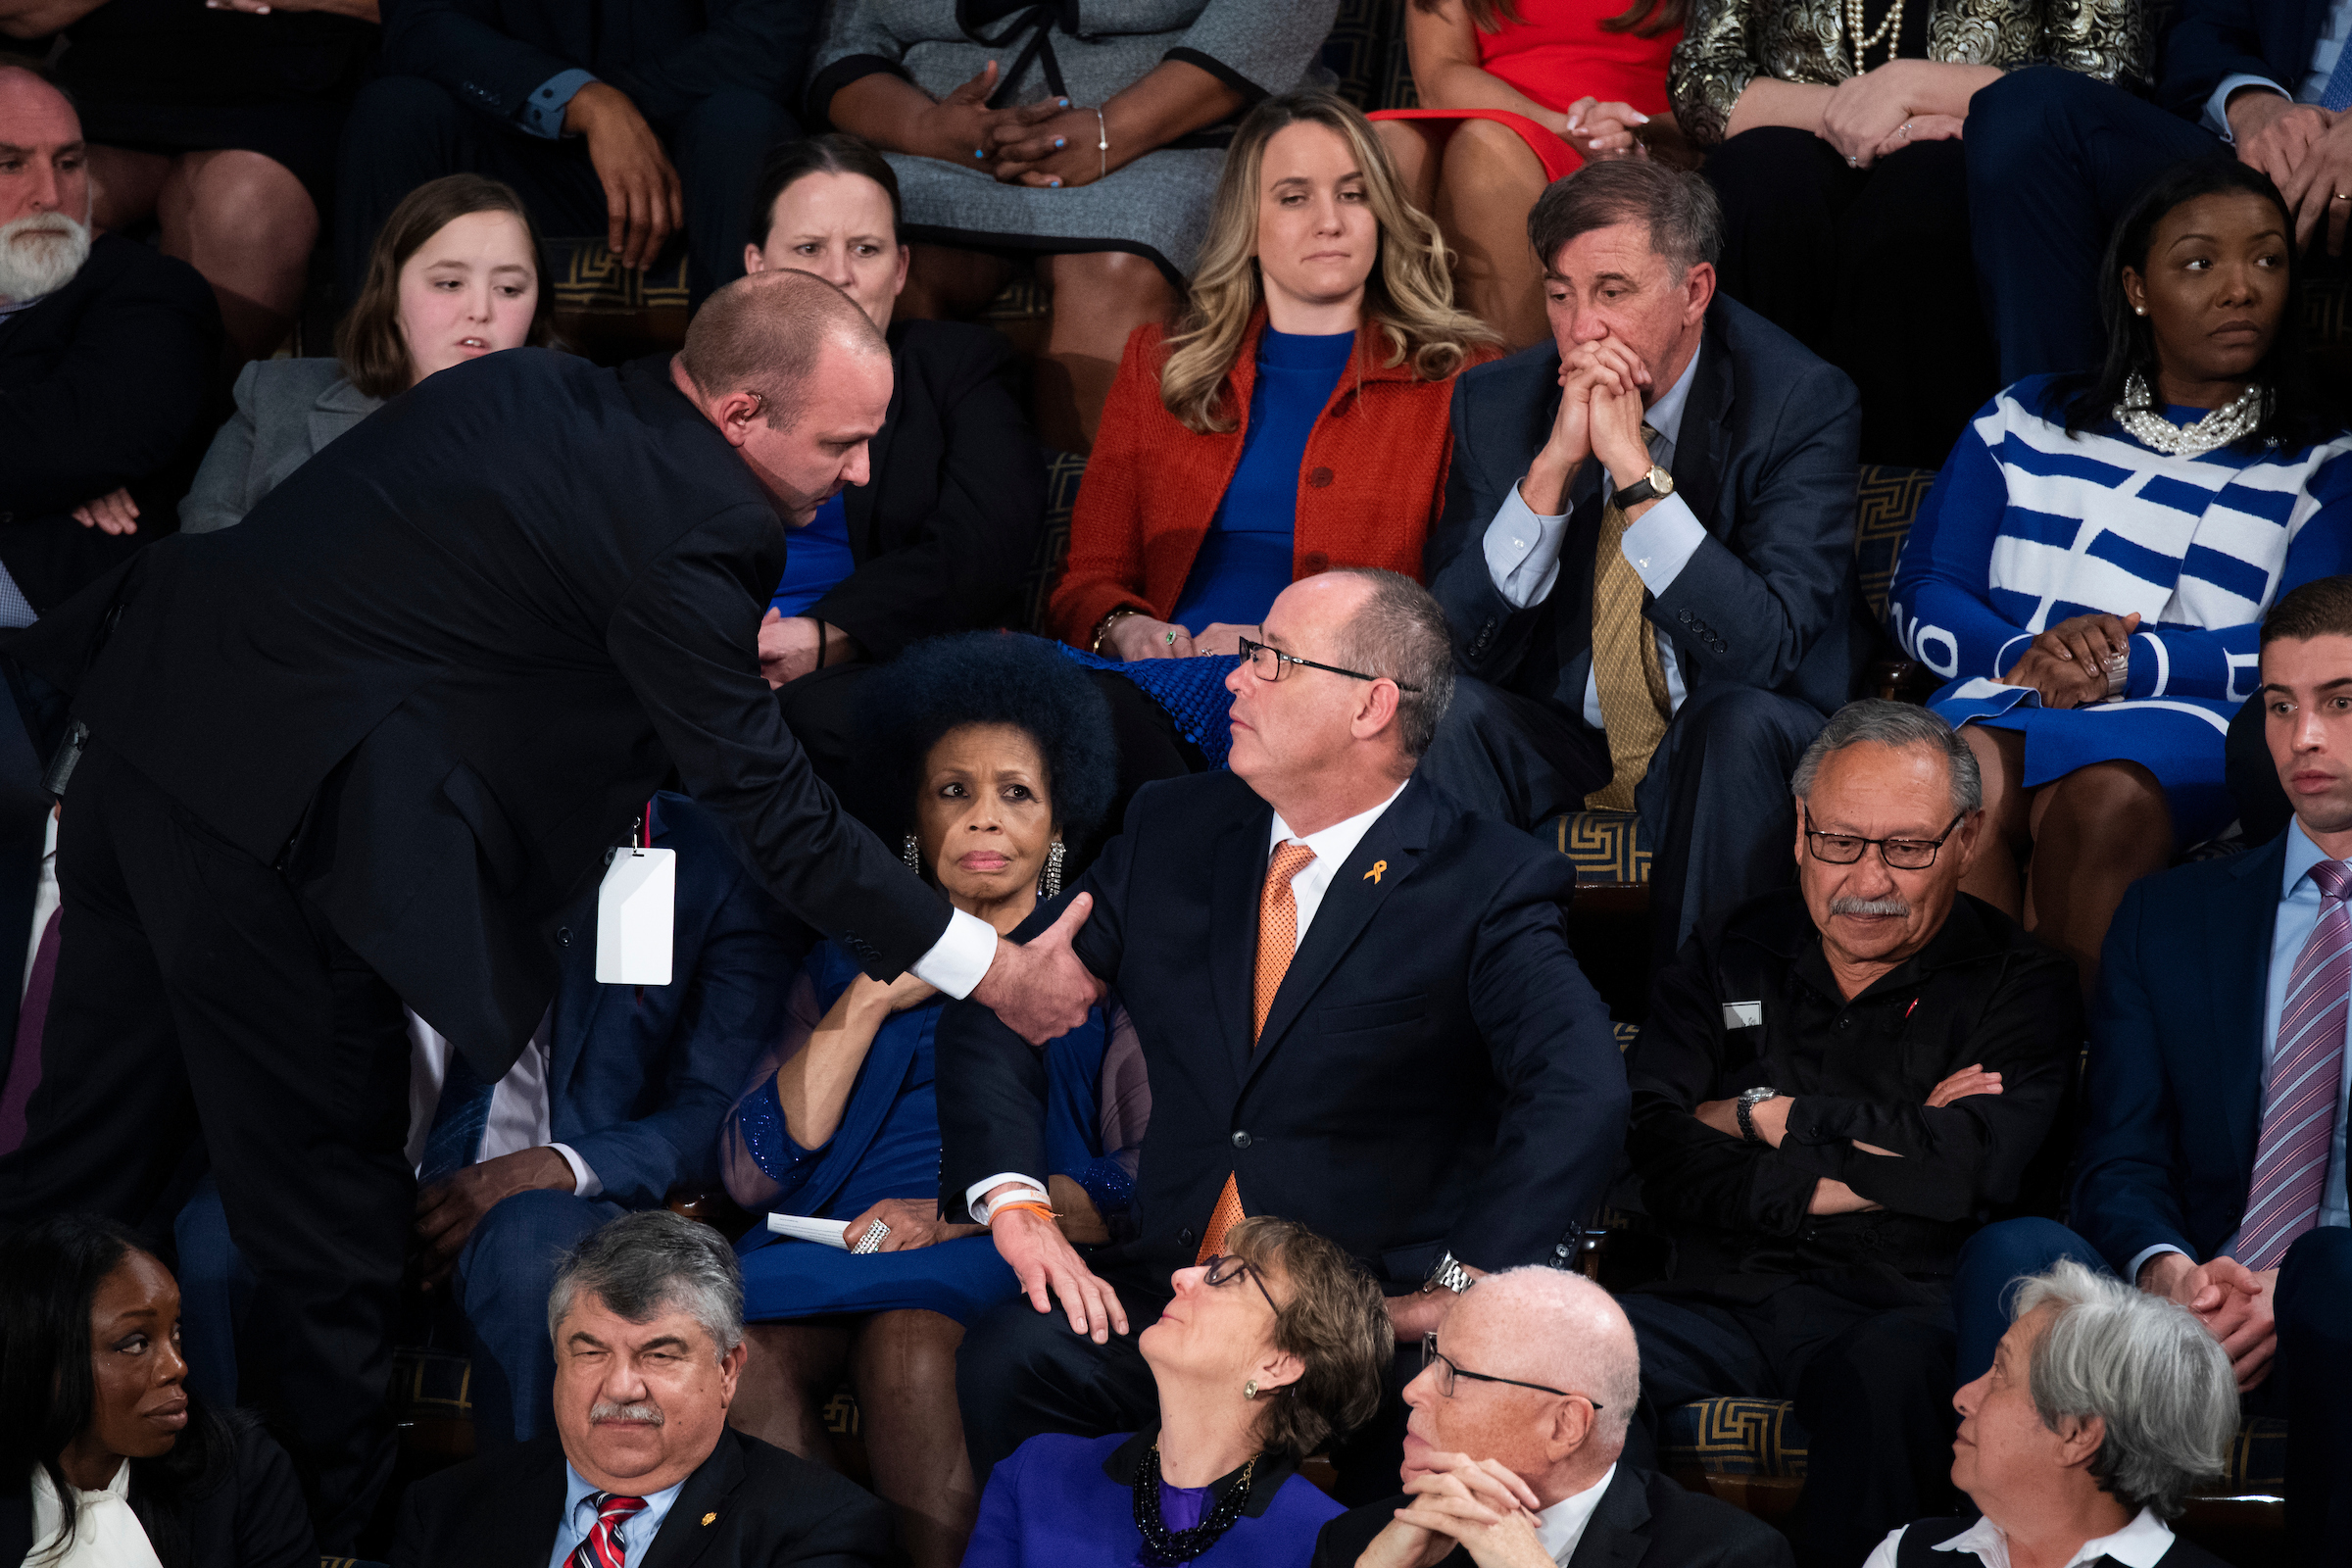 UNITED STATES - FEBRUARY 04: Fred Guttenberg, whose daughter Jamie was killed in the Parkland school shooting, is removed after yelling during President Donald Trump's State of the Union address in the House Chamber on Tuesday, February 4, 2020. (Photo By Tom Williams/CQ Roll Call)